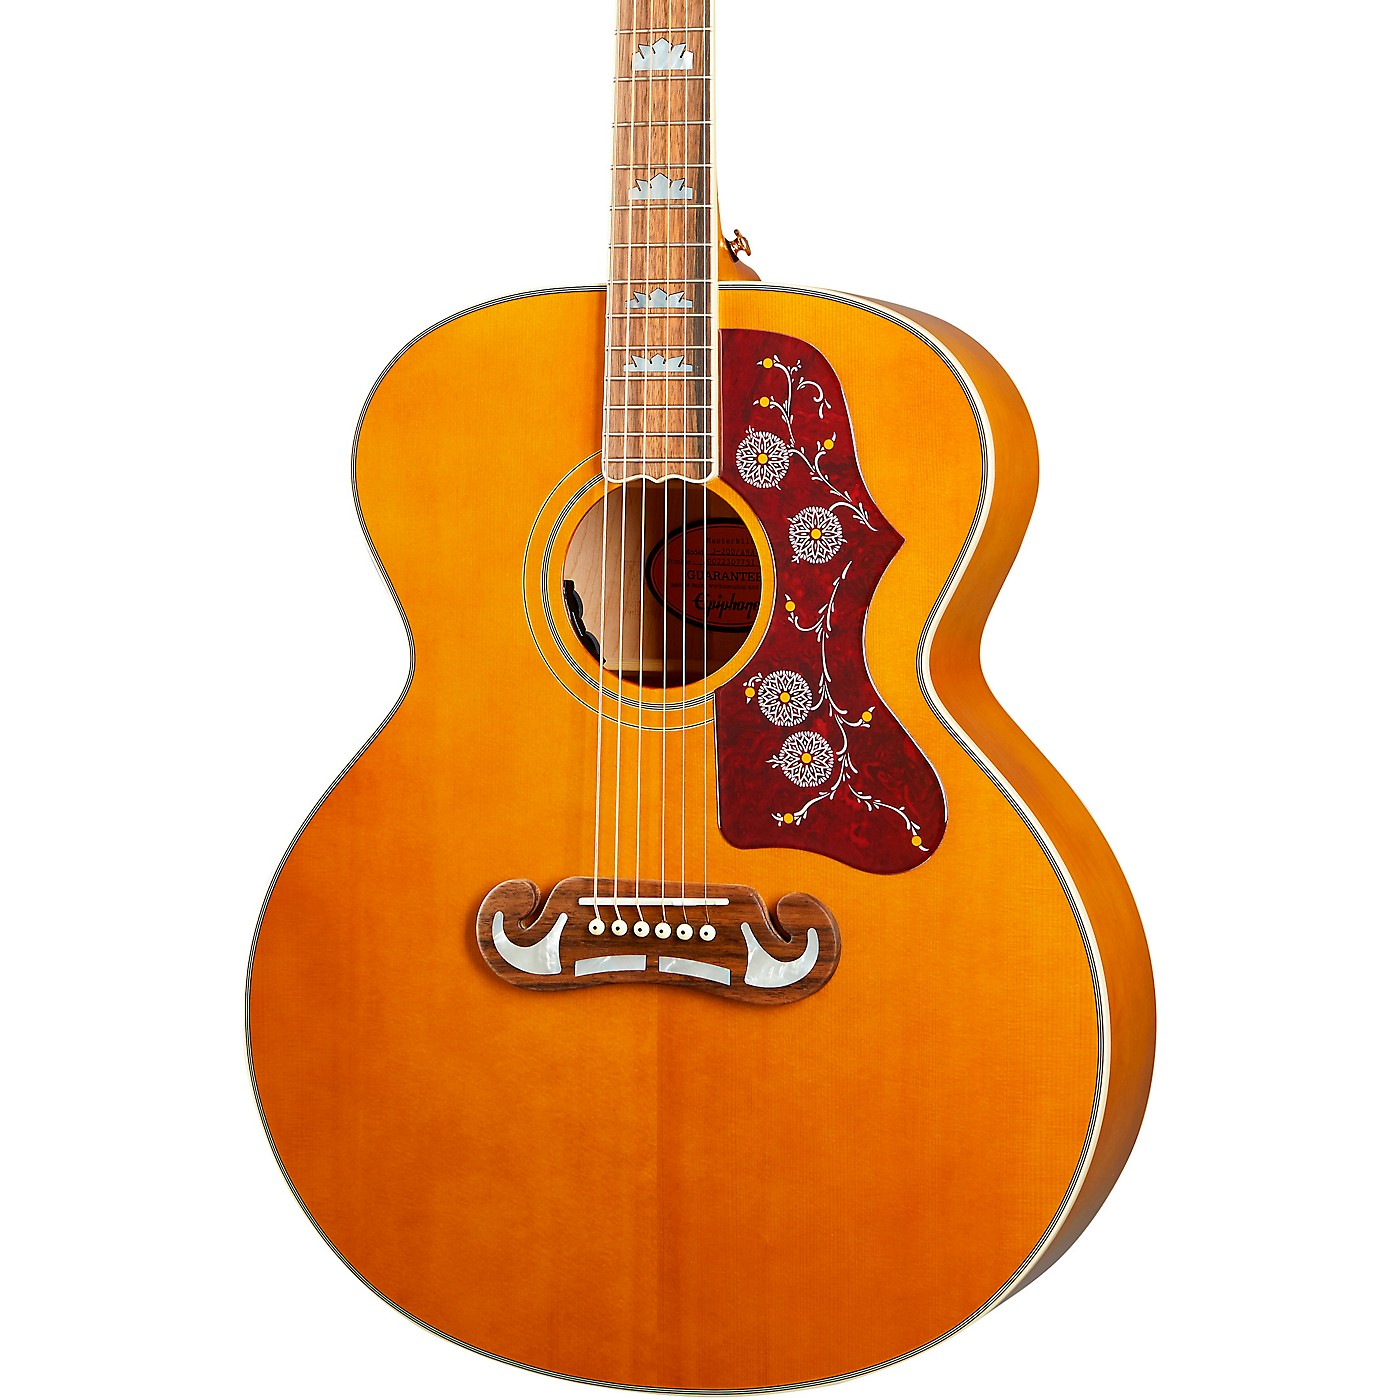 Epiphone Inspired by Gibson J-200 Acoustic-Electric Guitar thumbnail